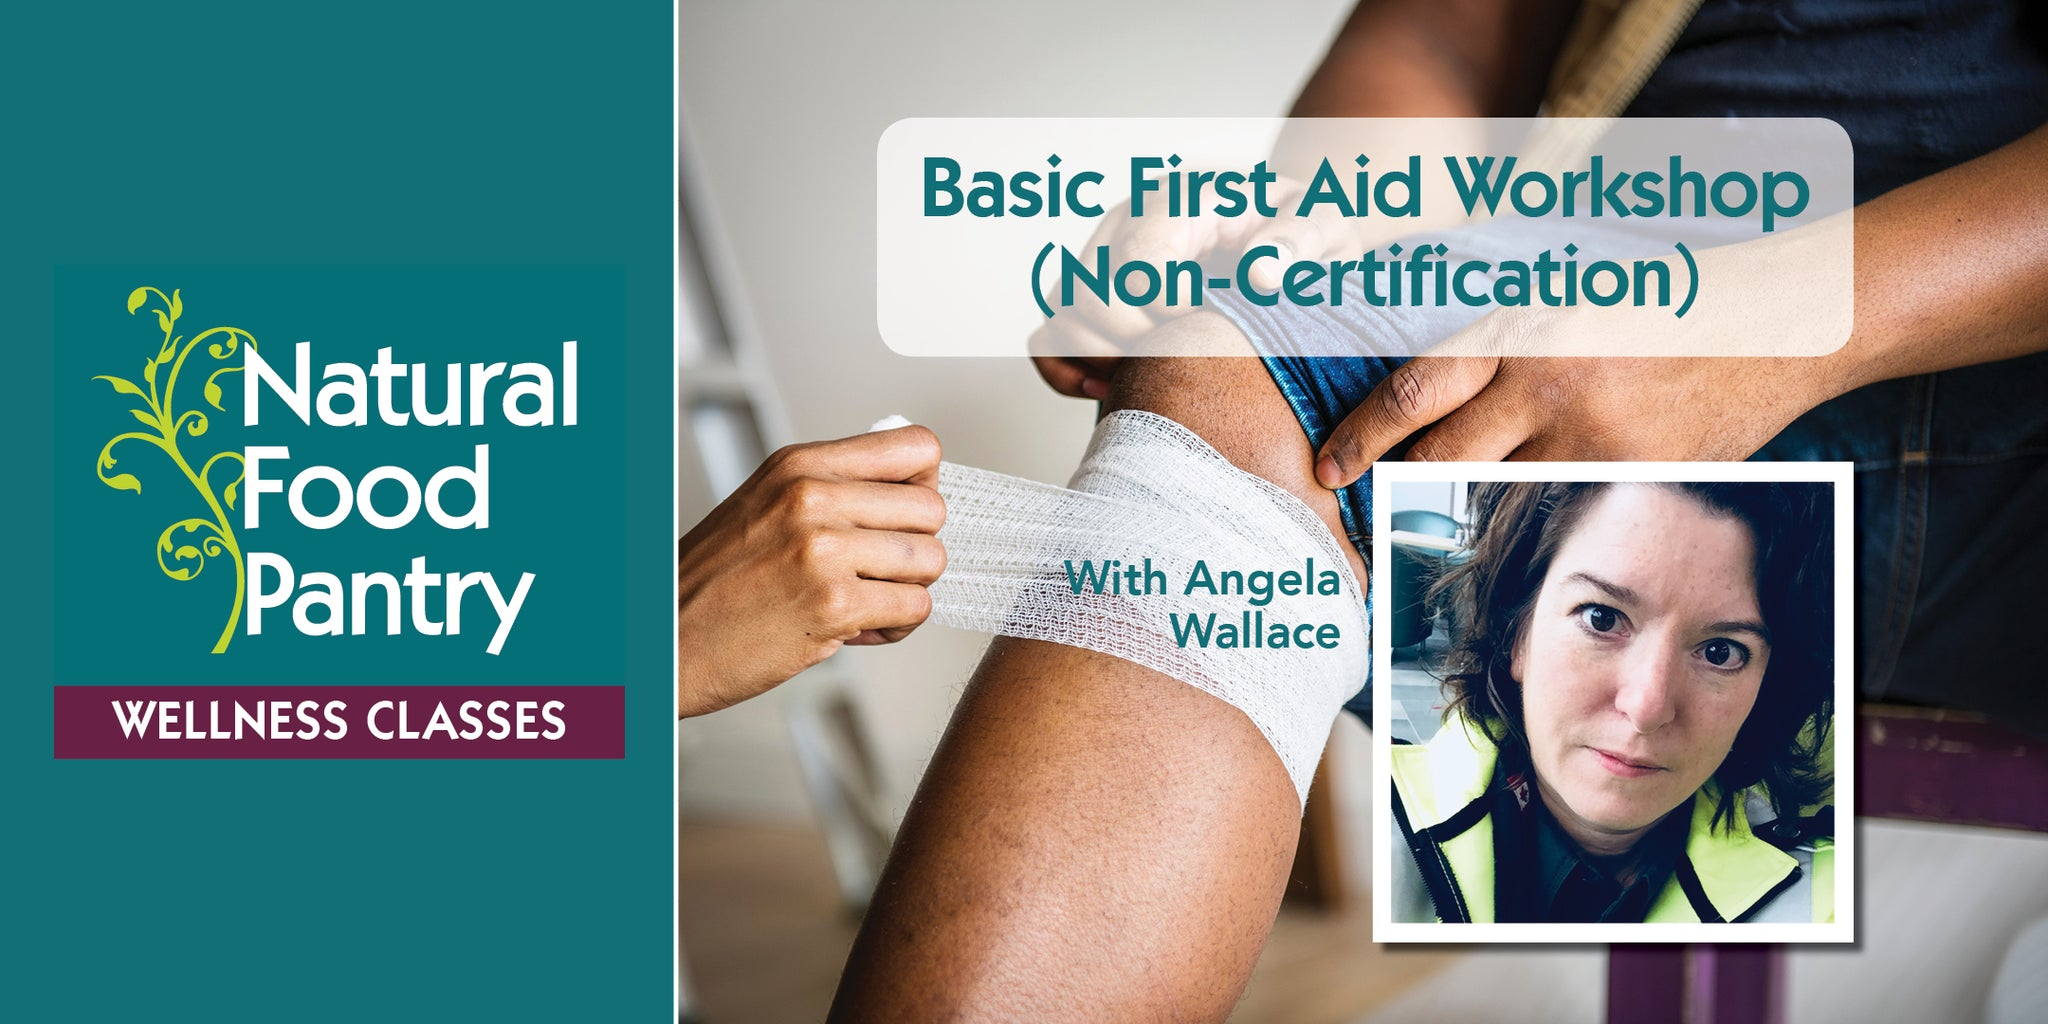 May 1: Basic First Aid workshop (non-certification)